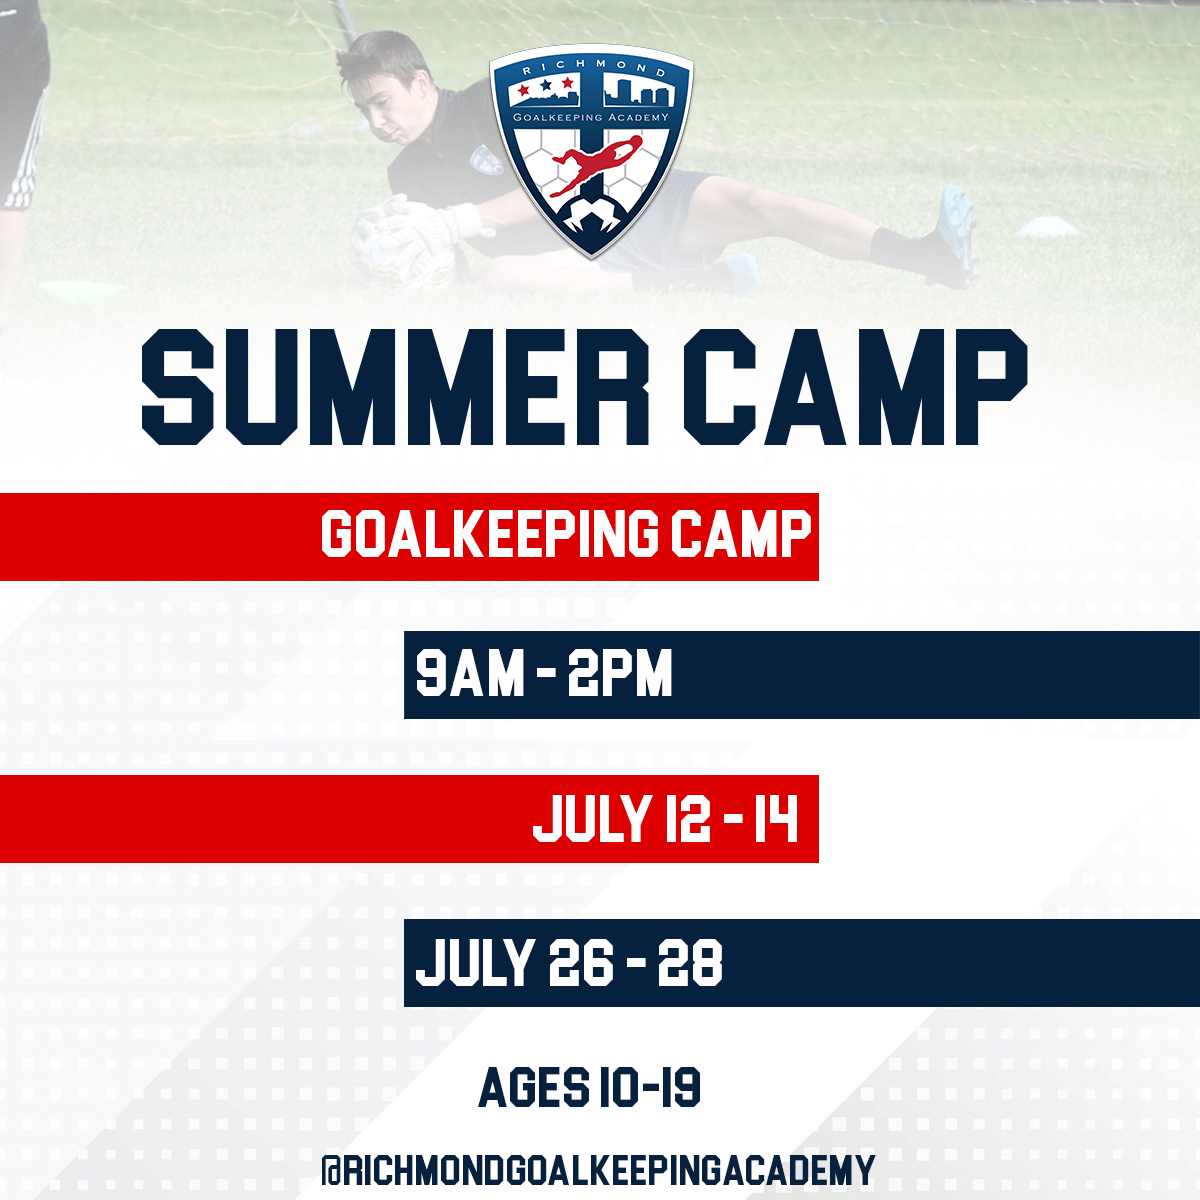 Summer Goalkeeping Camp infographic with details